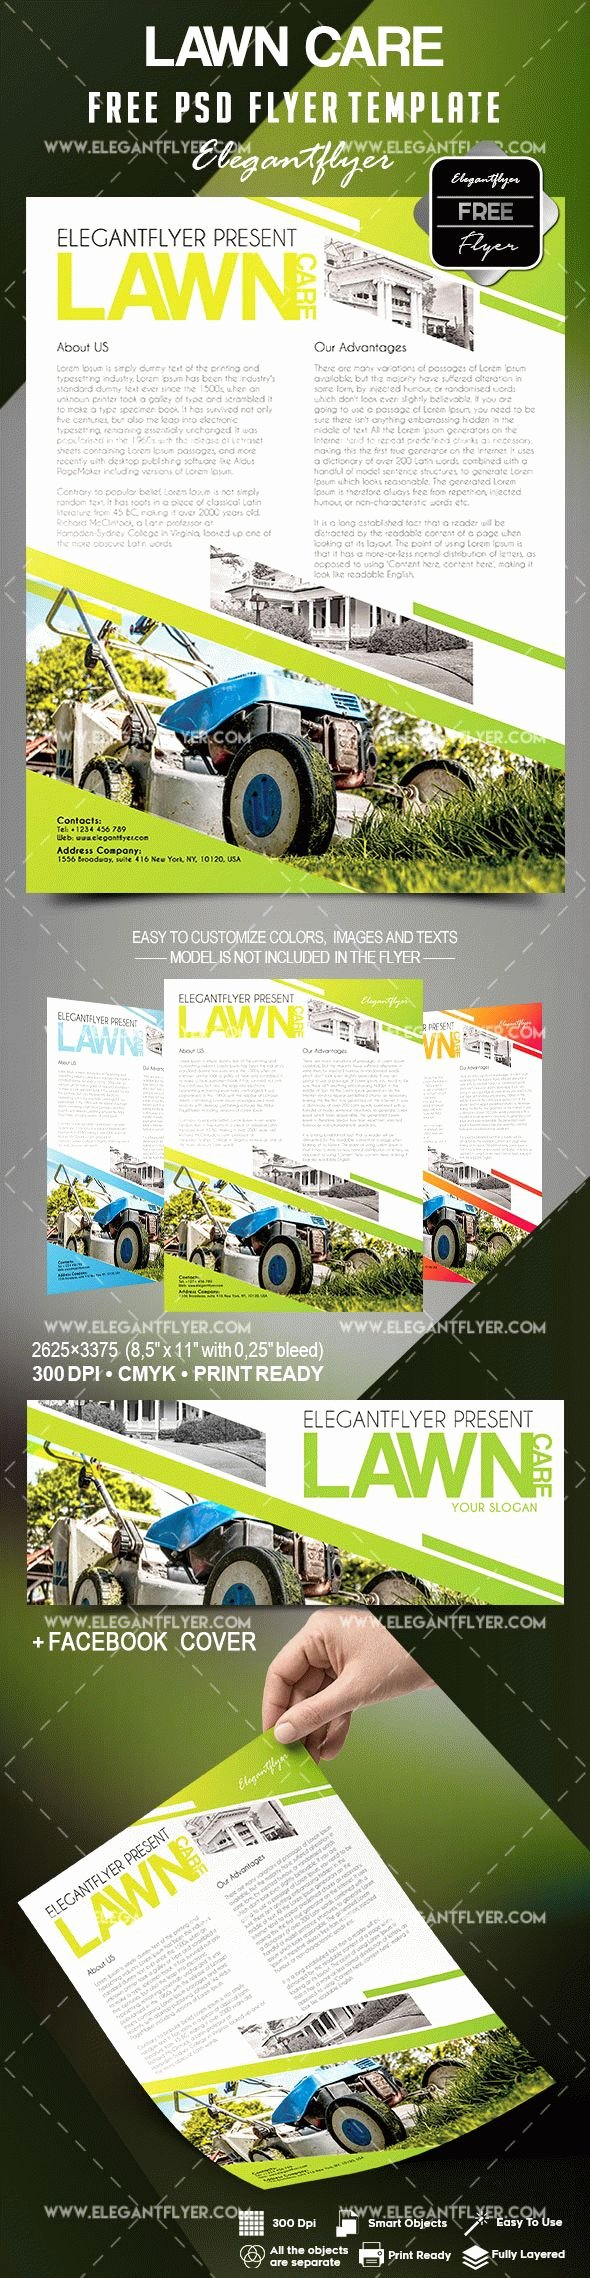 Free Landscaping Flyer Templates New Lawn Care Flyers Templates Free – by Elegantflyer